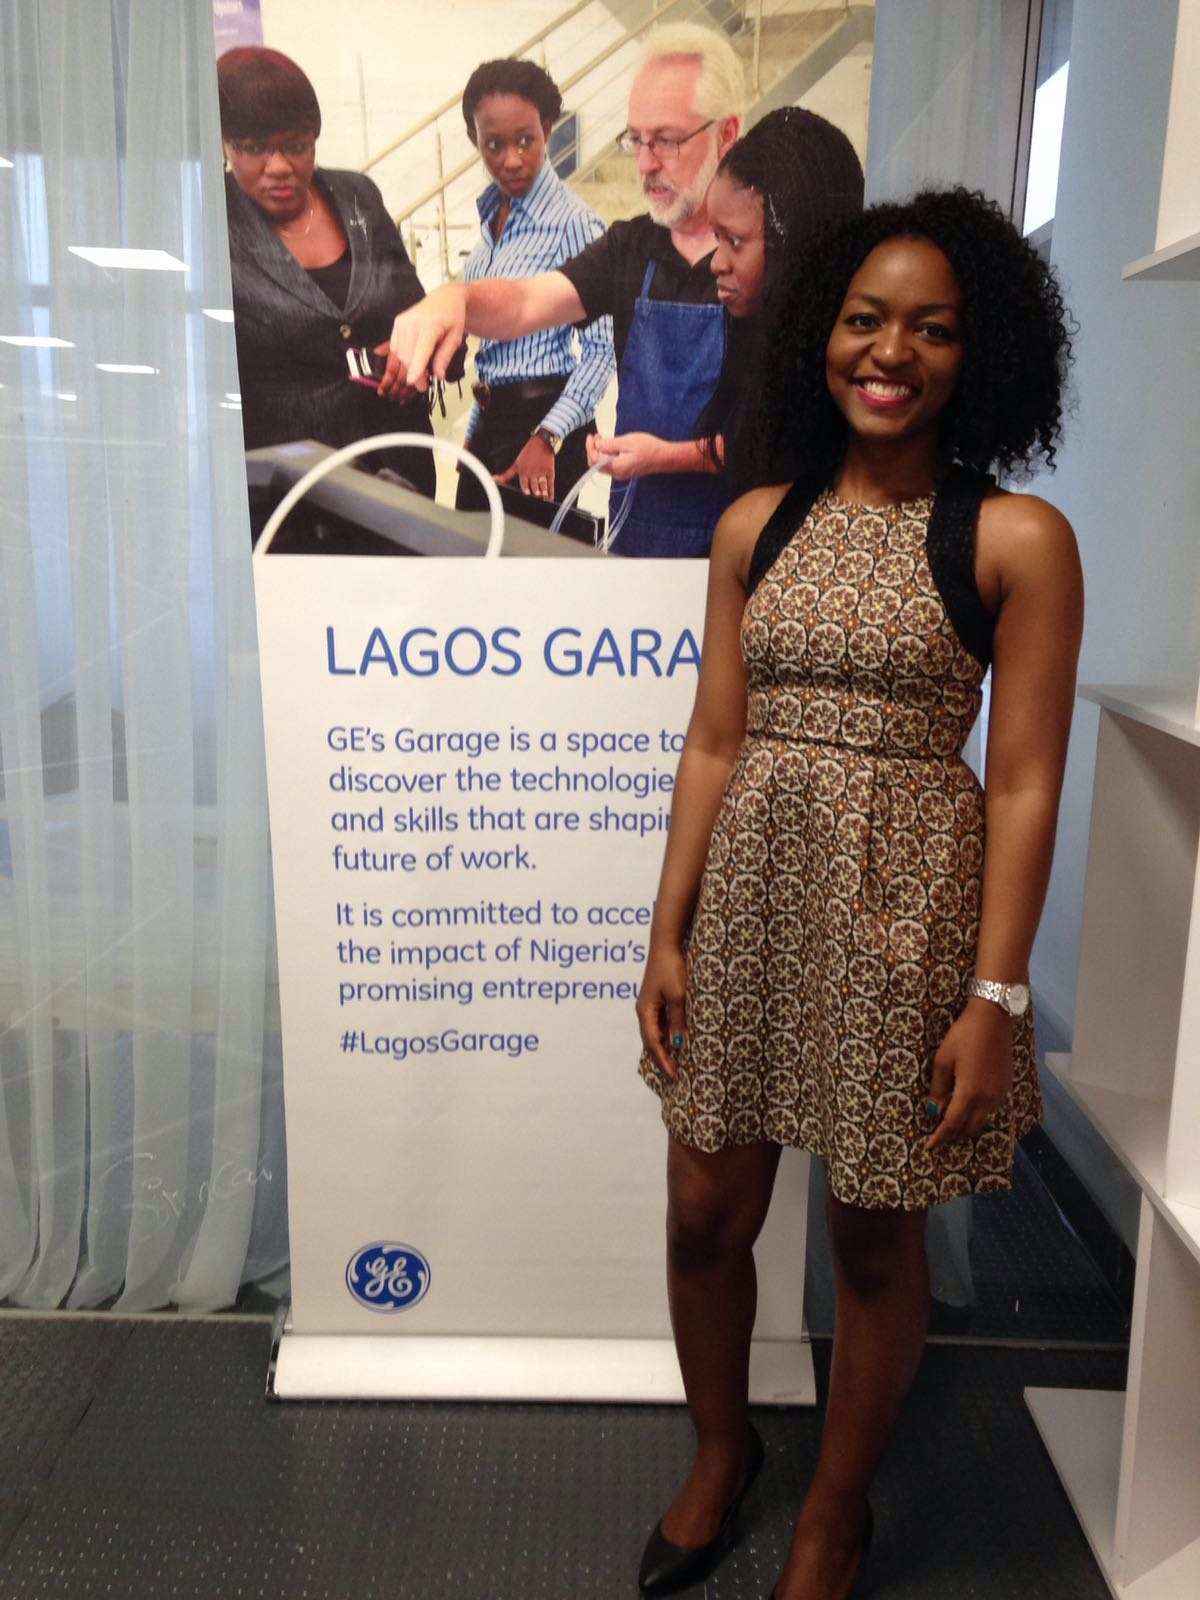 At GE Lagos Garage